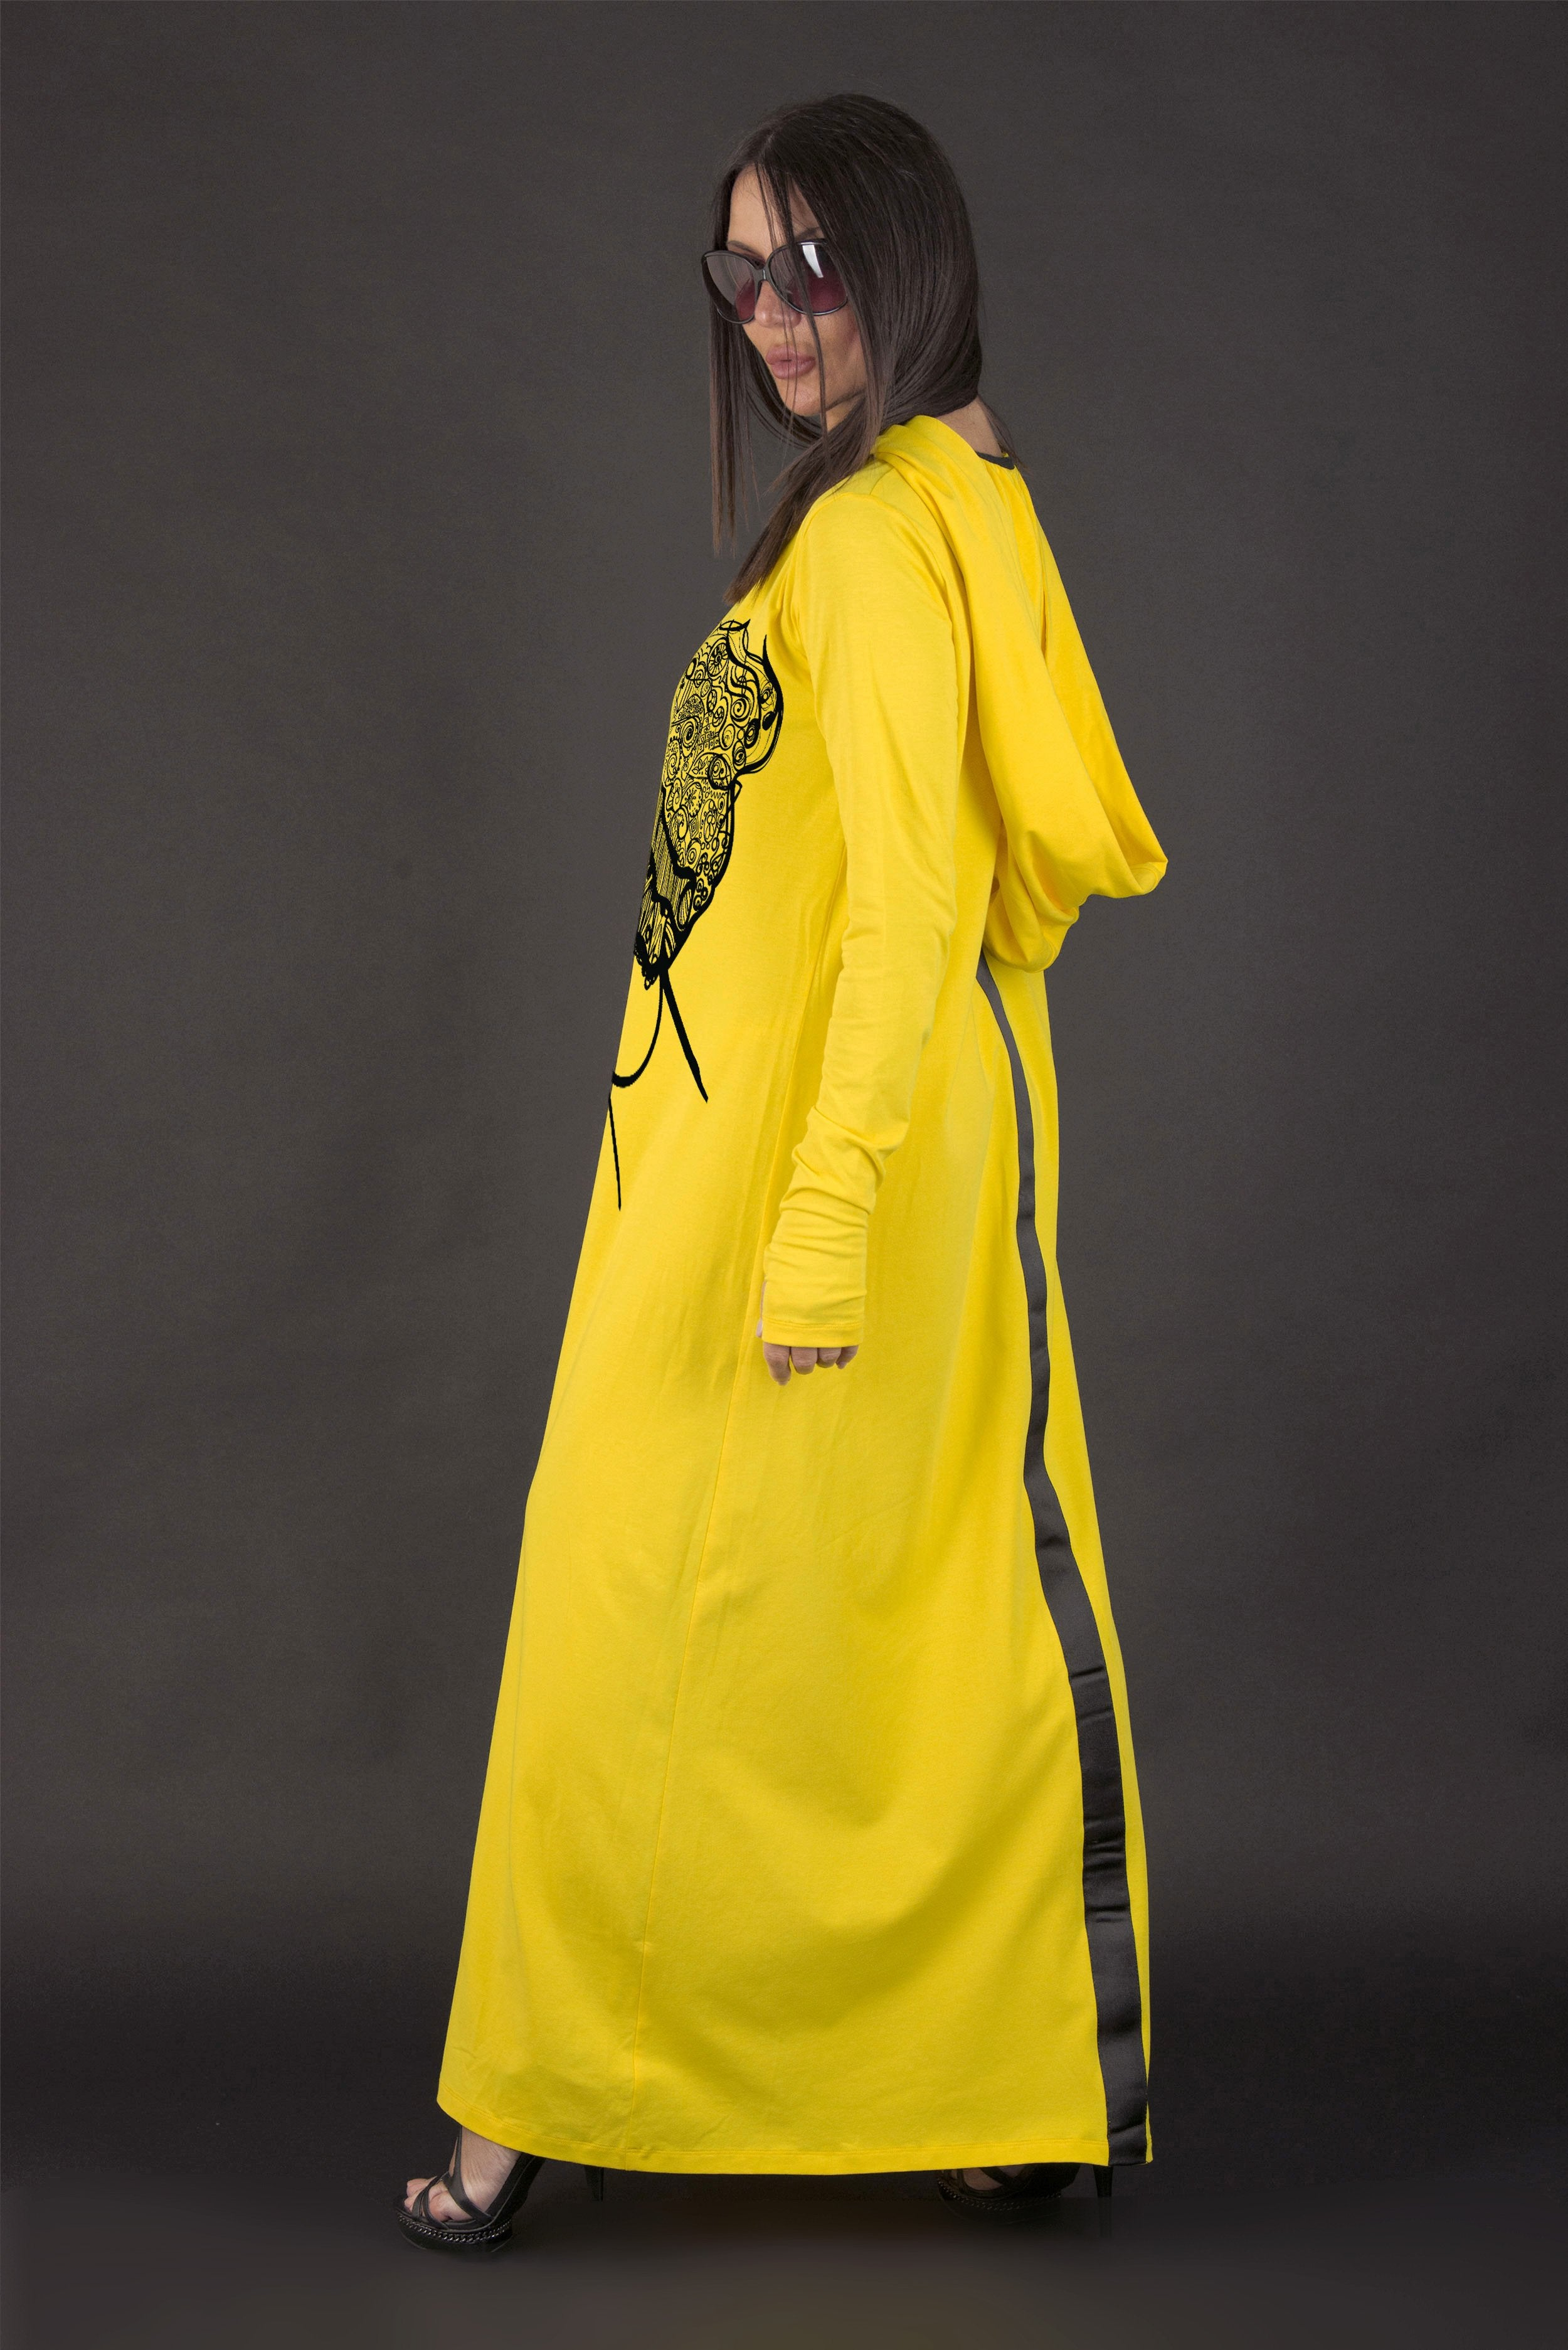 Yellow Hooded Long Dress with African Woman Print, New Arrival